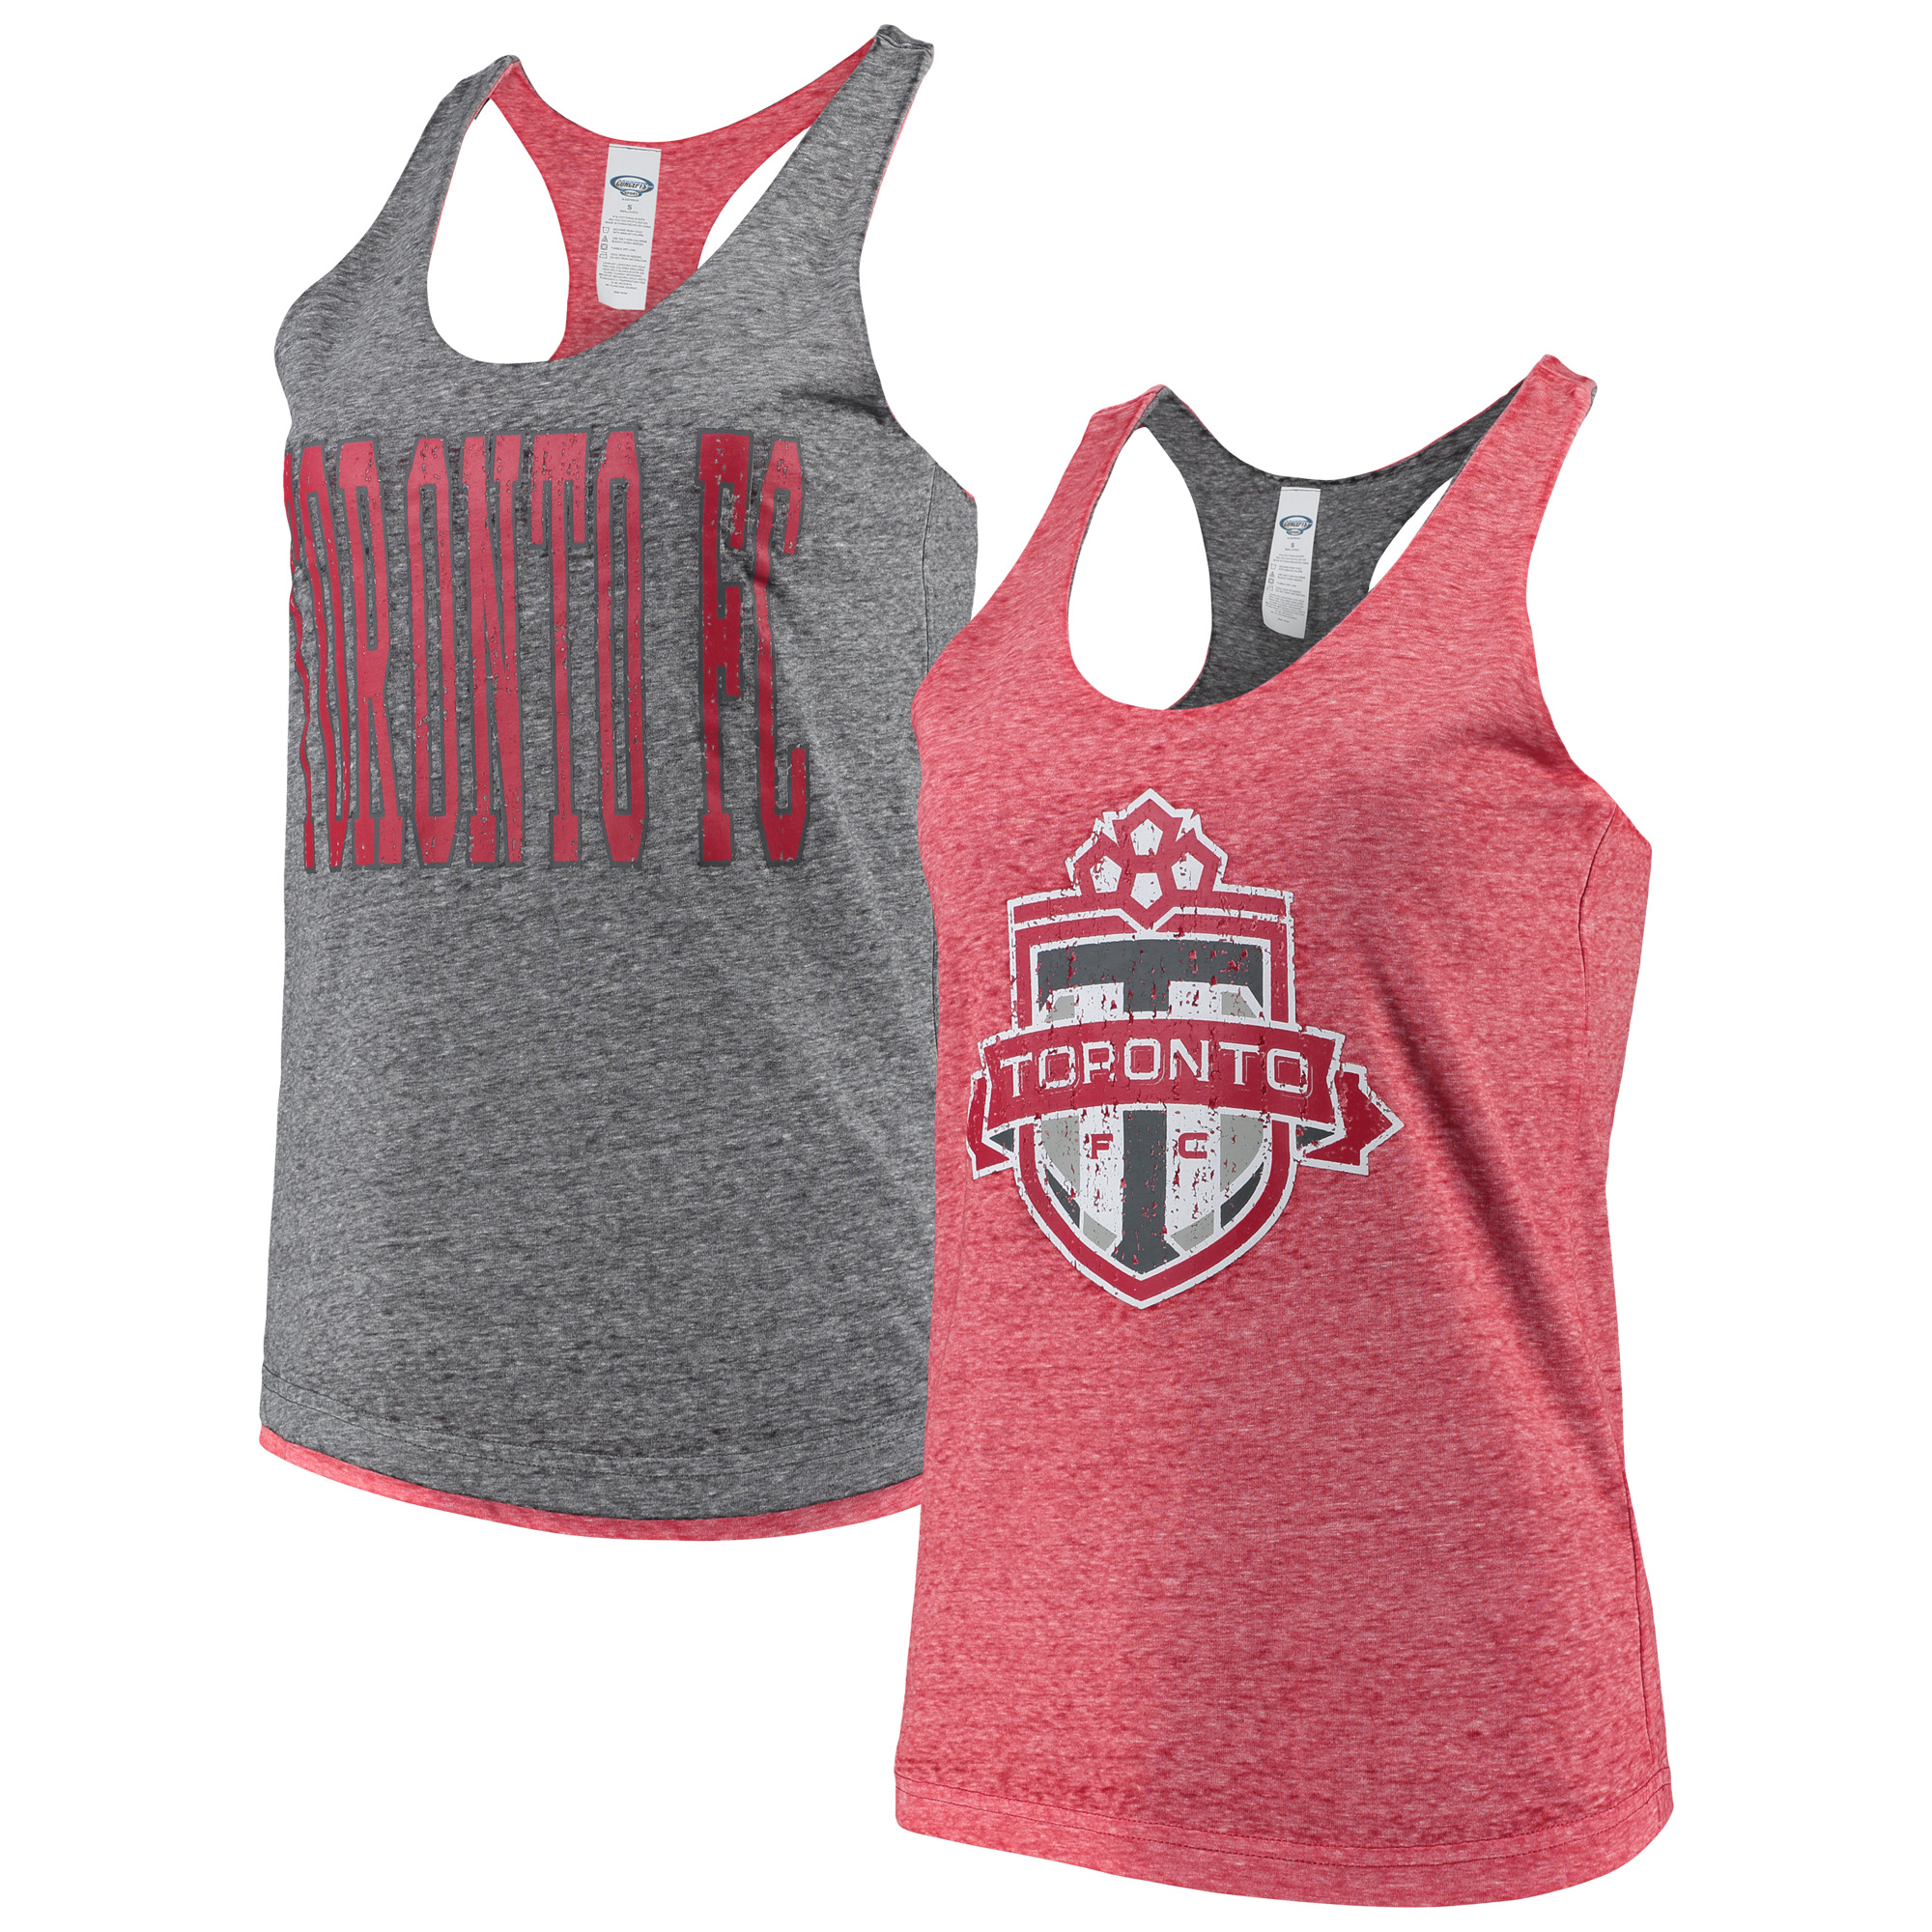 Toronto FC Concepts Sport Women's Squad Reversible Tank Top - Red/Charcoal